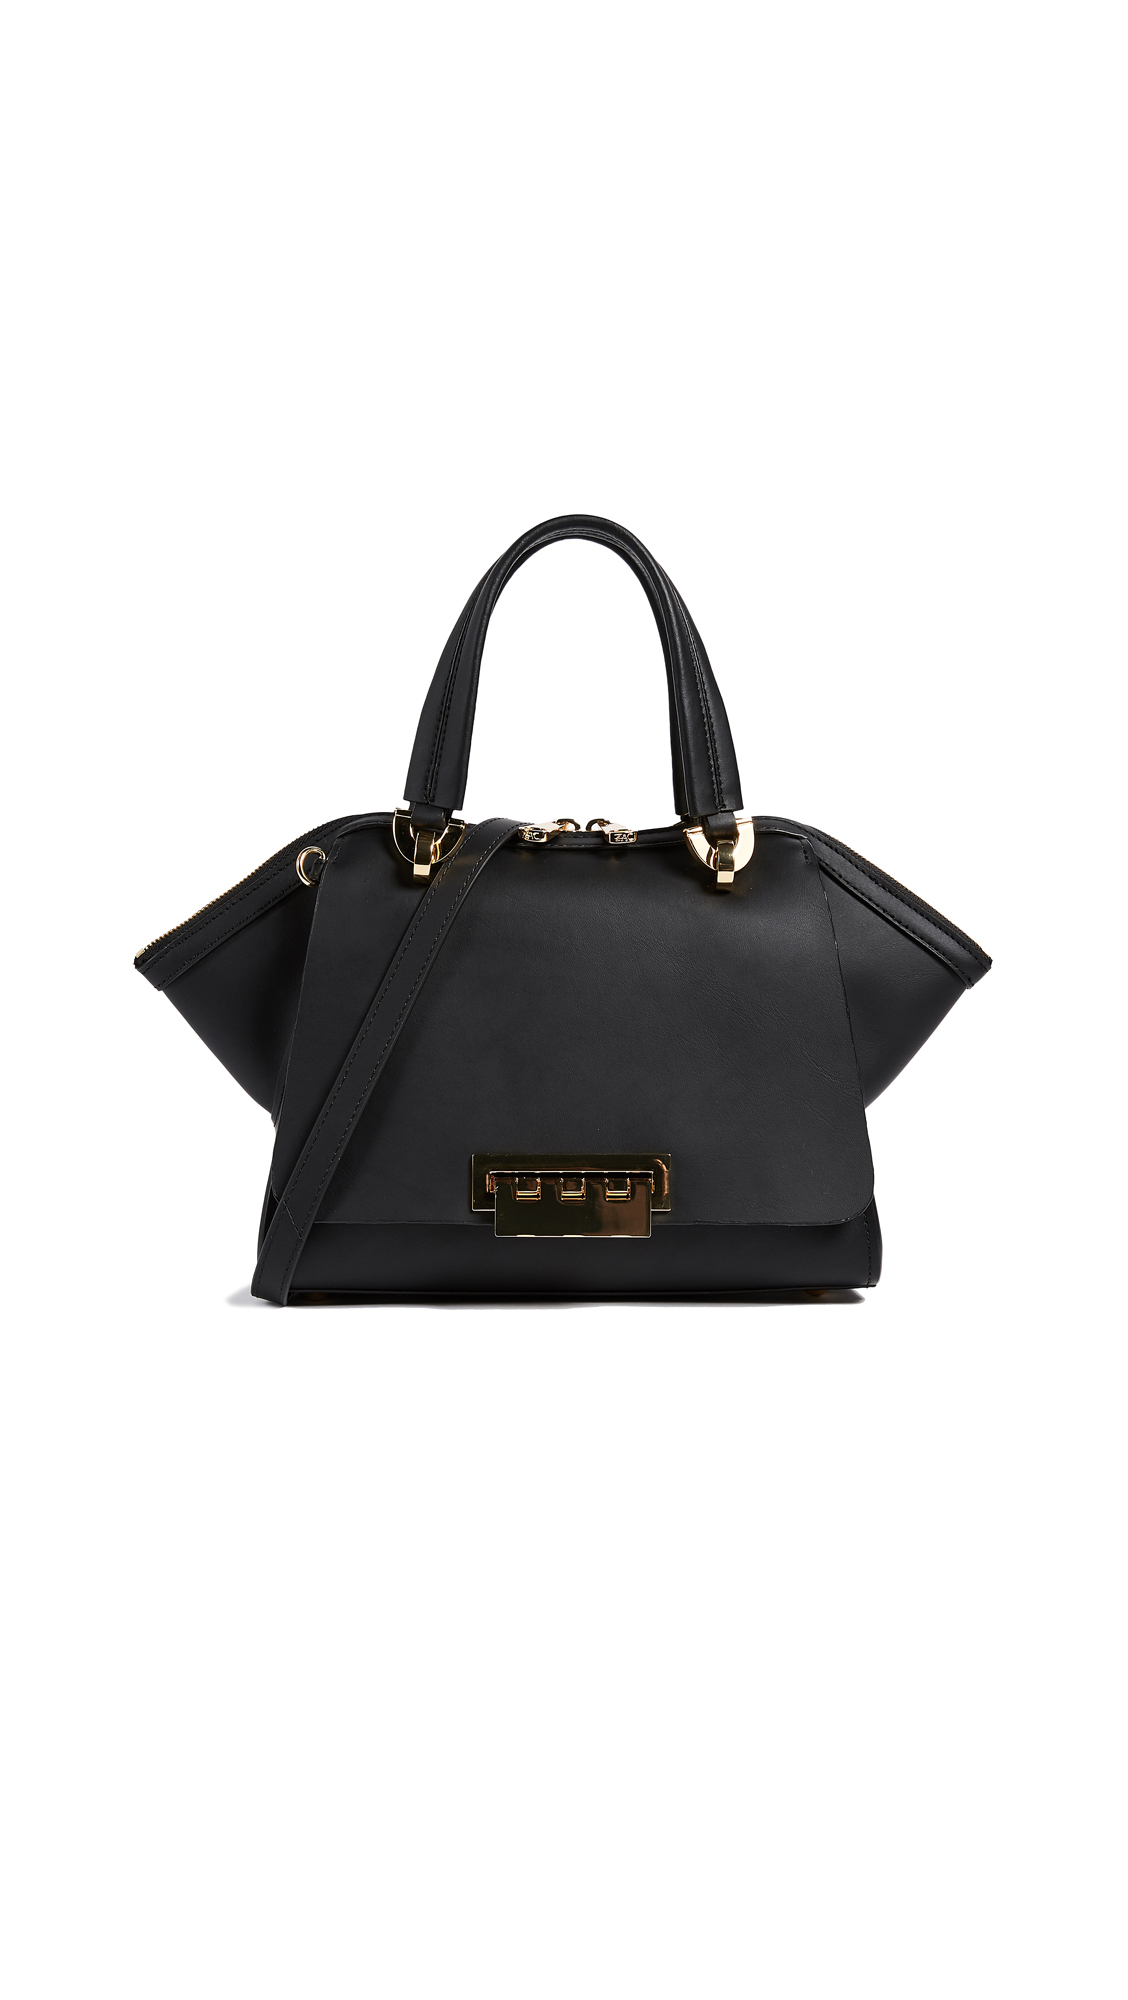 ZAC Zac Posen Eartha Small Double Handle Bag - Black